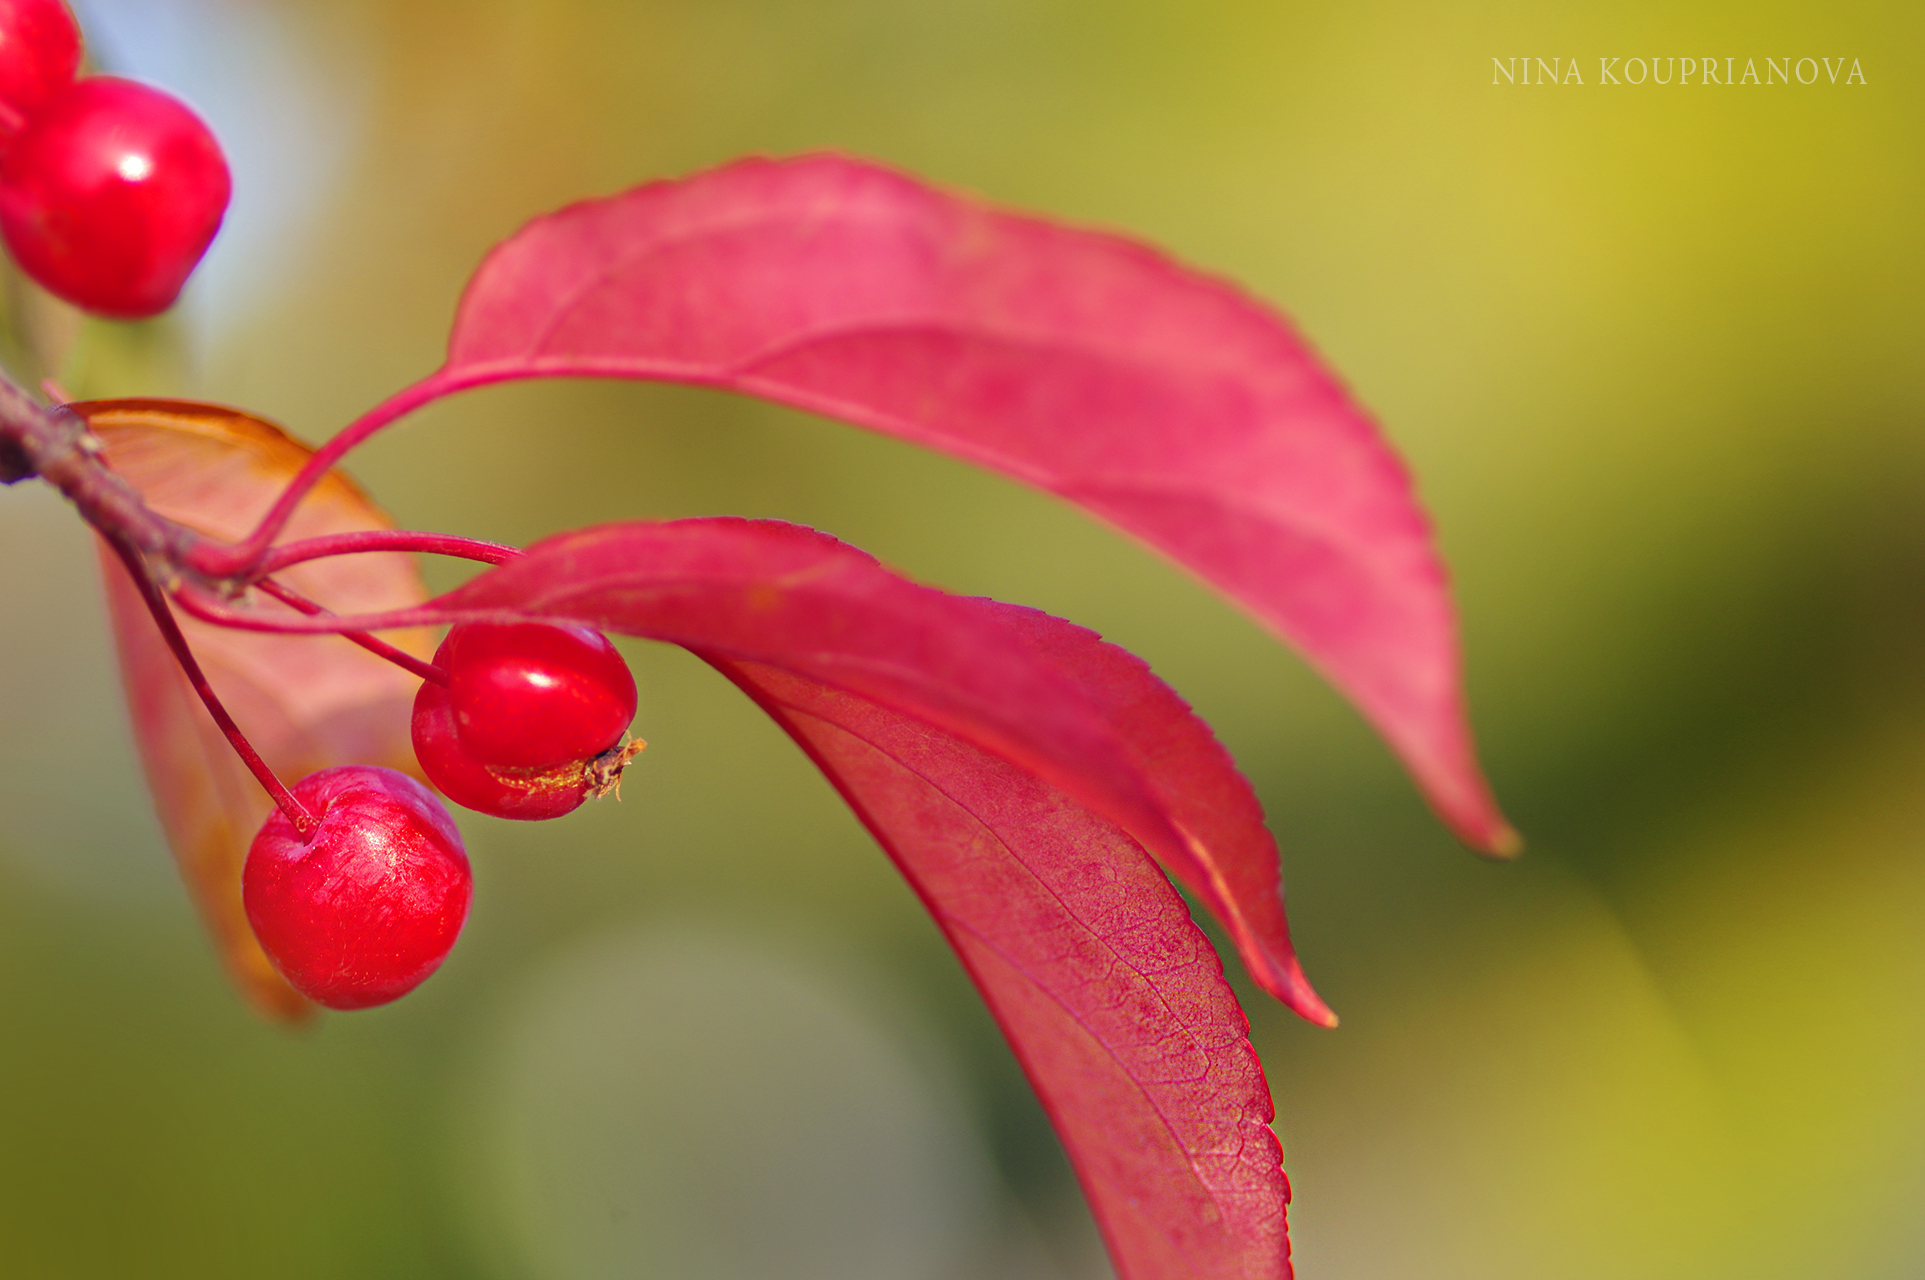 red berries and leaves 1900 px.jpg